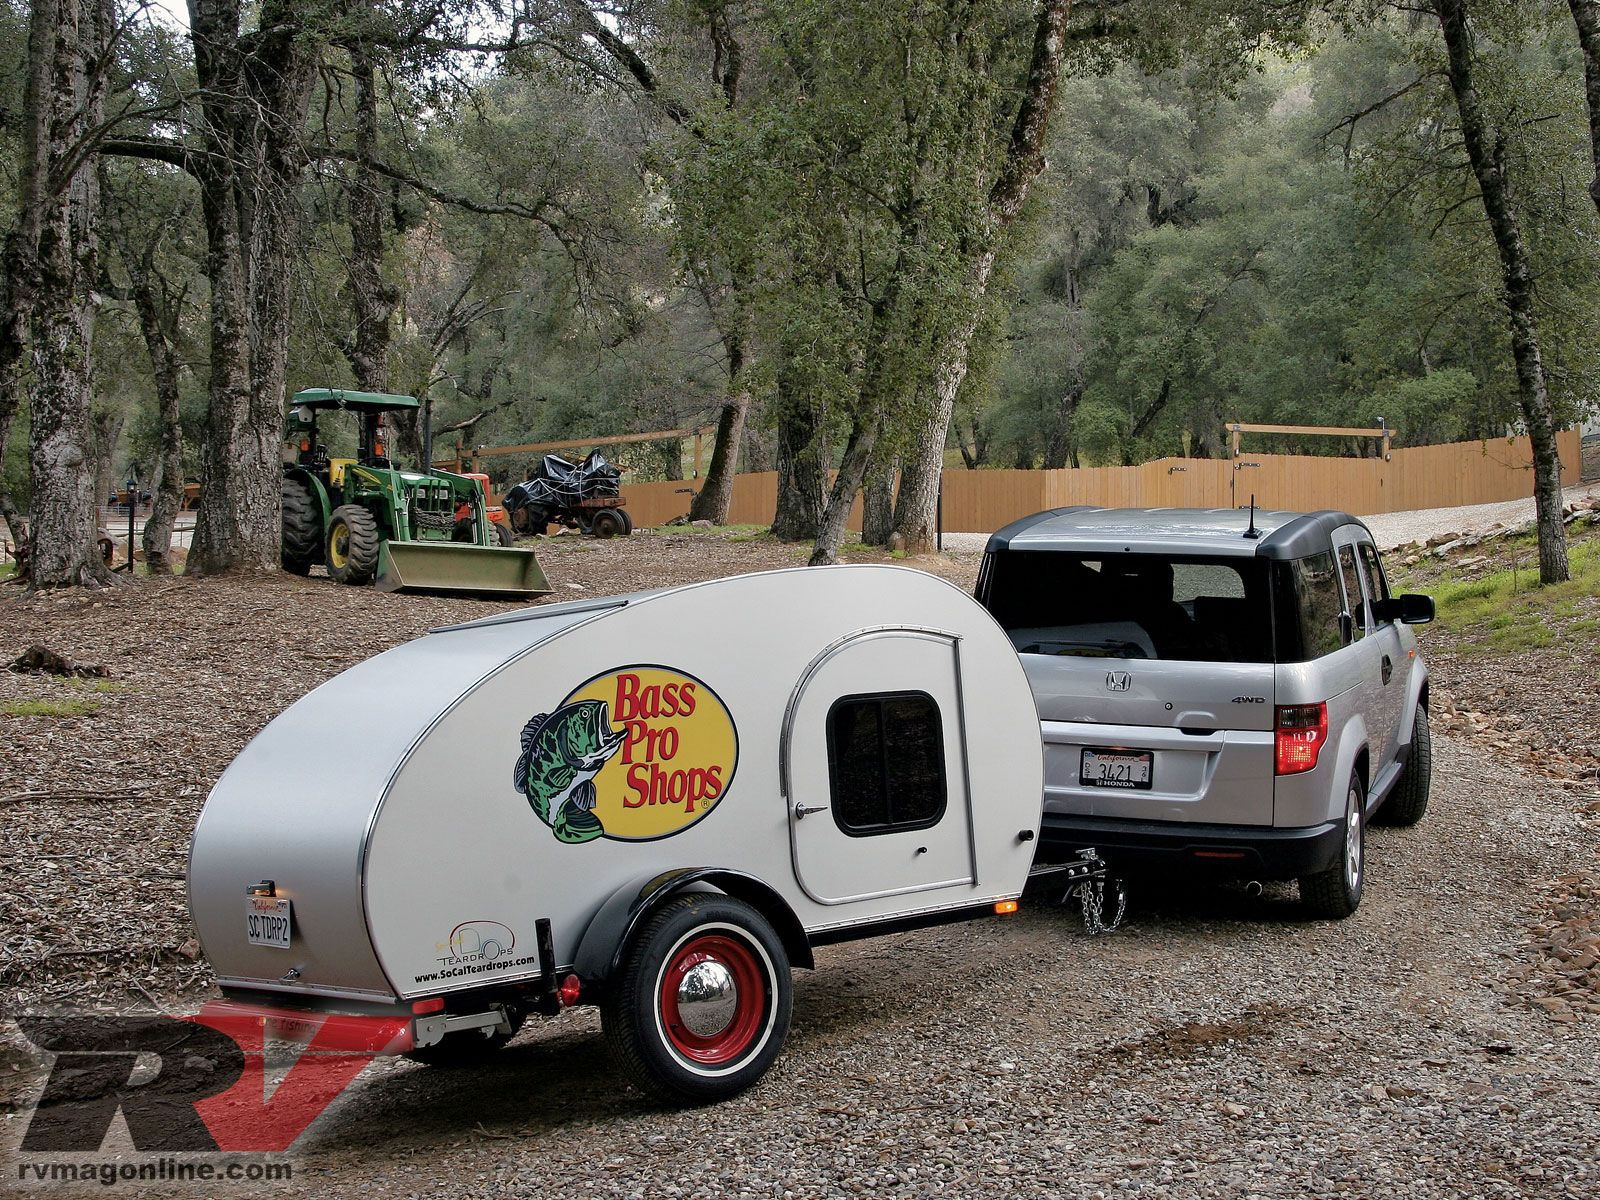 Lightweight Teardrop Camper minus the bass pro shop and ad some